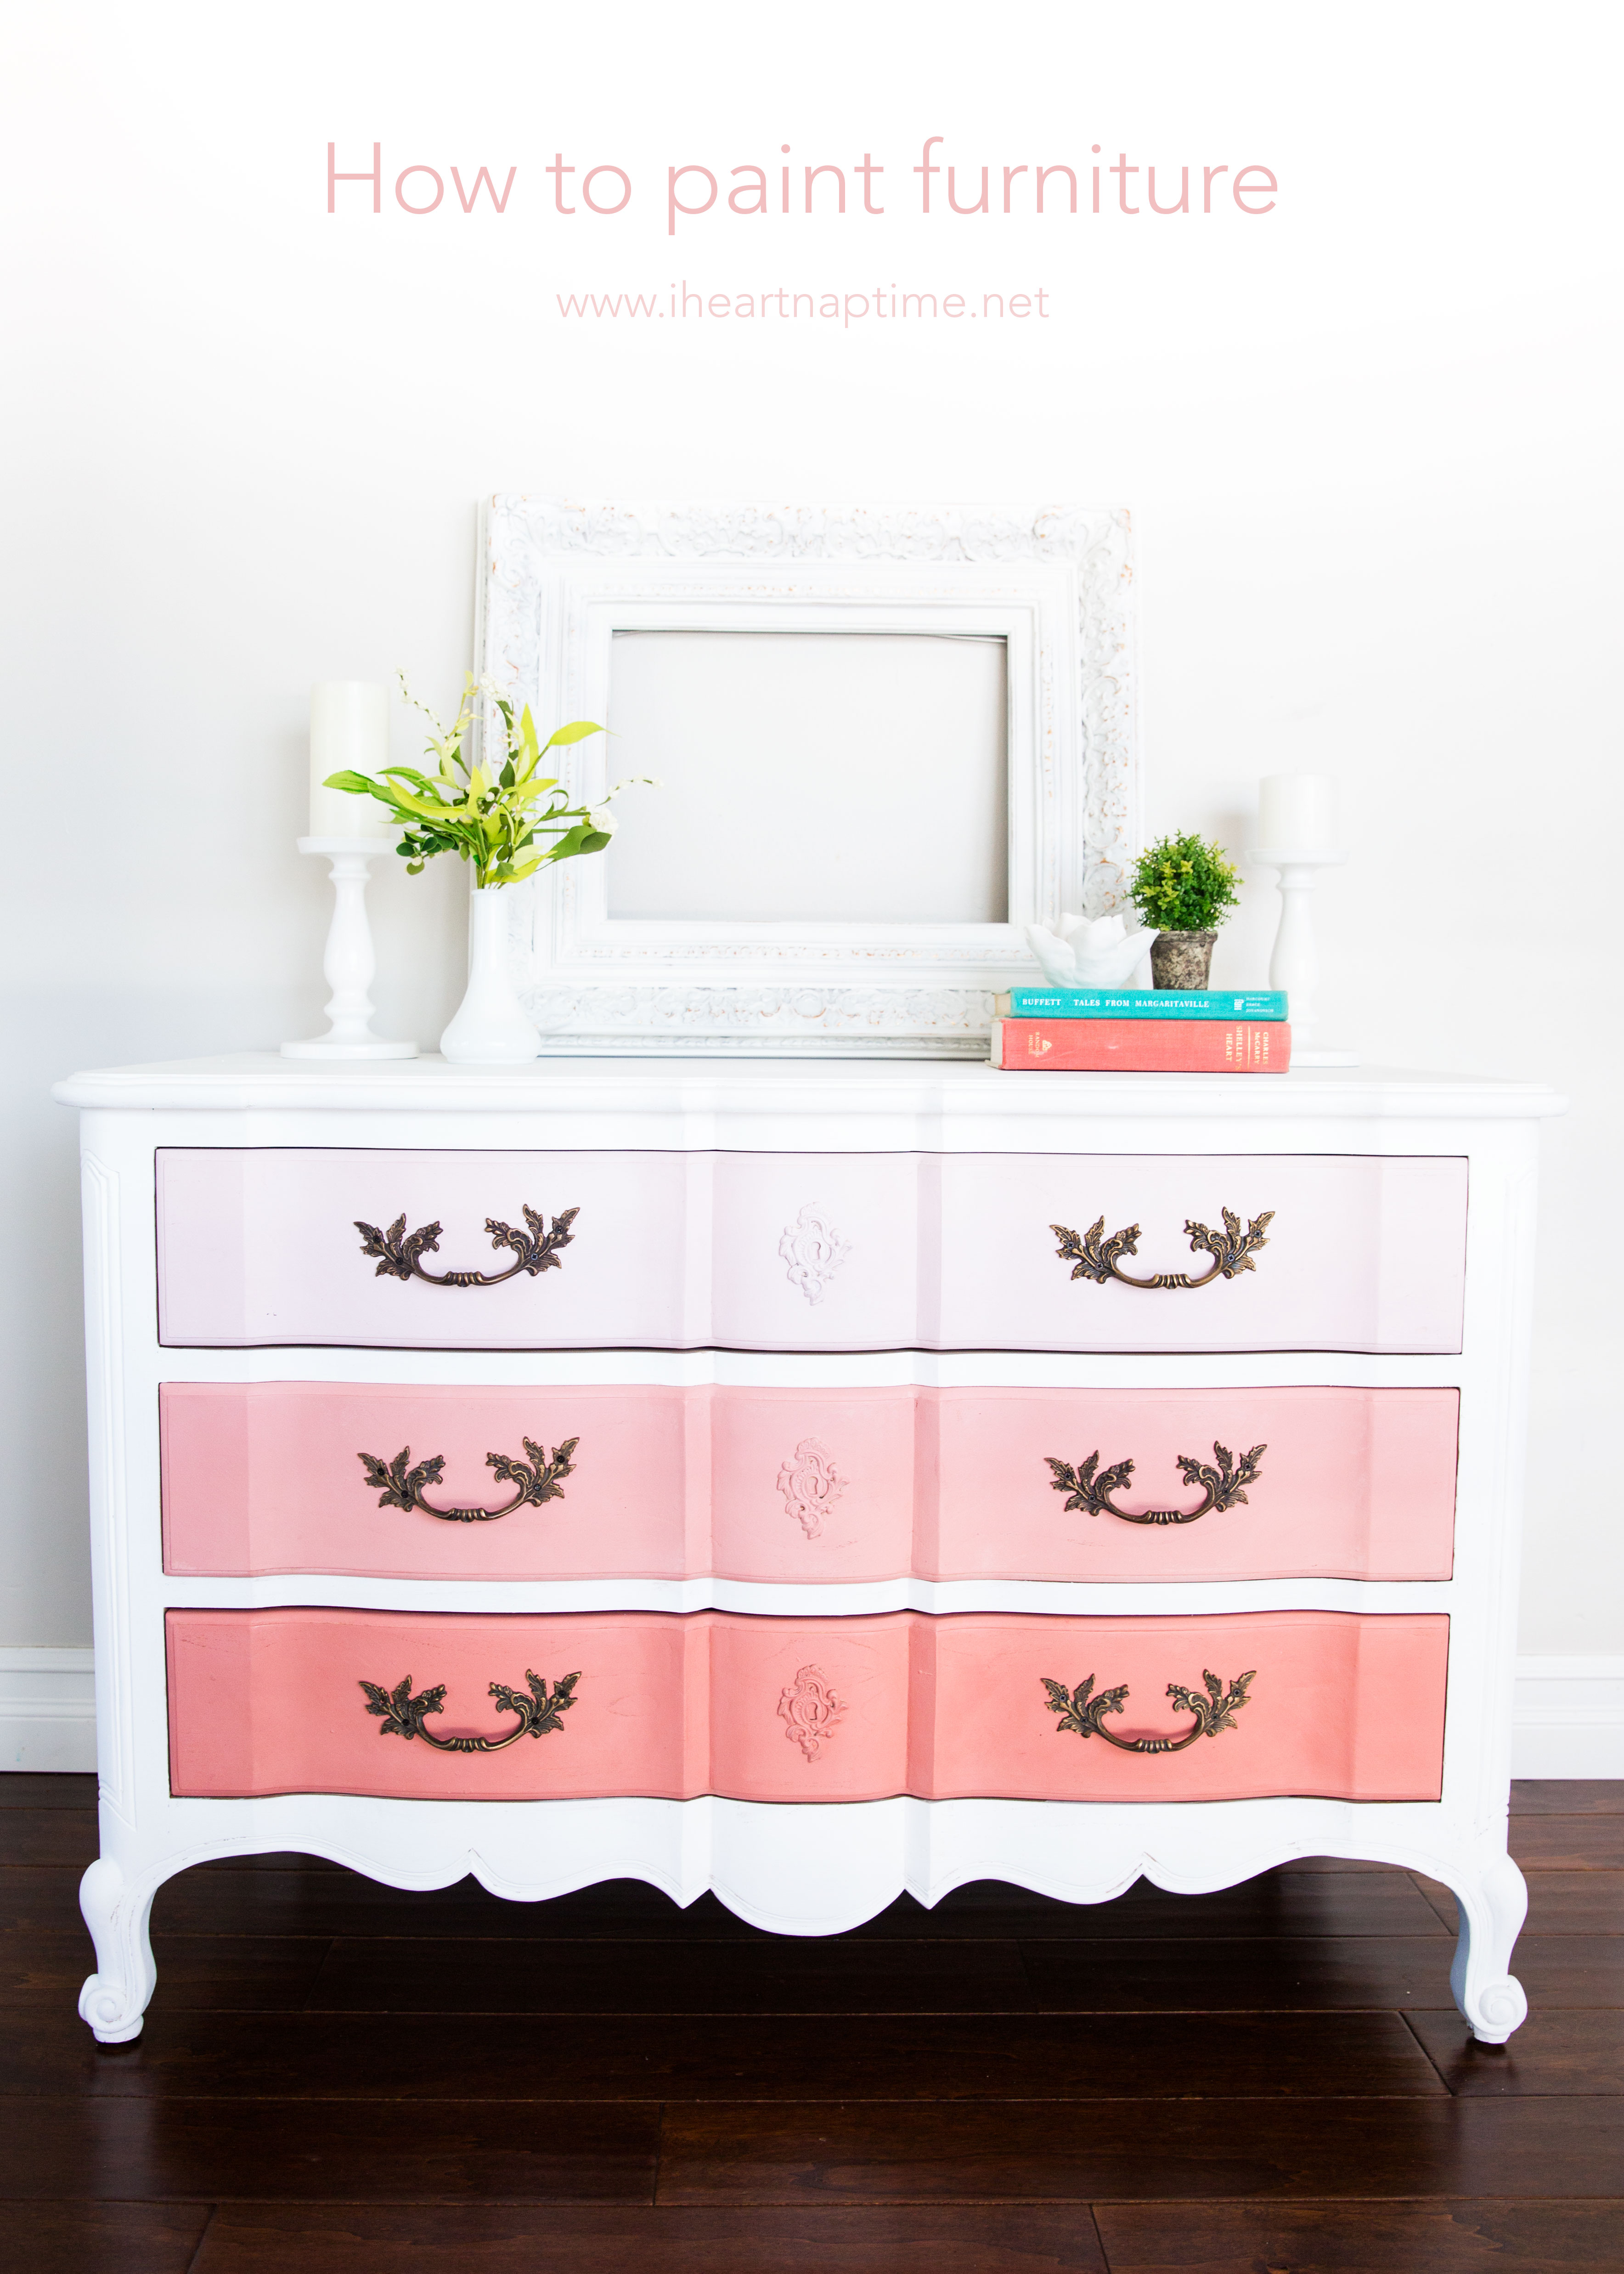 13 Diy Ombre Furniture Projects You Gonna Like Shelterness